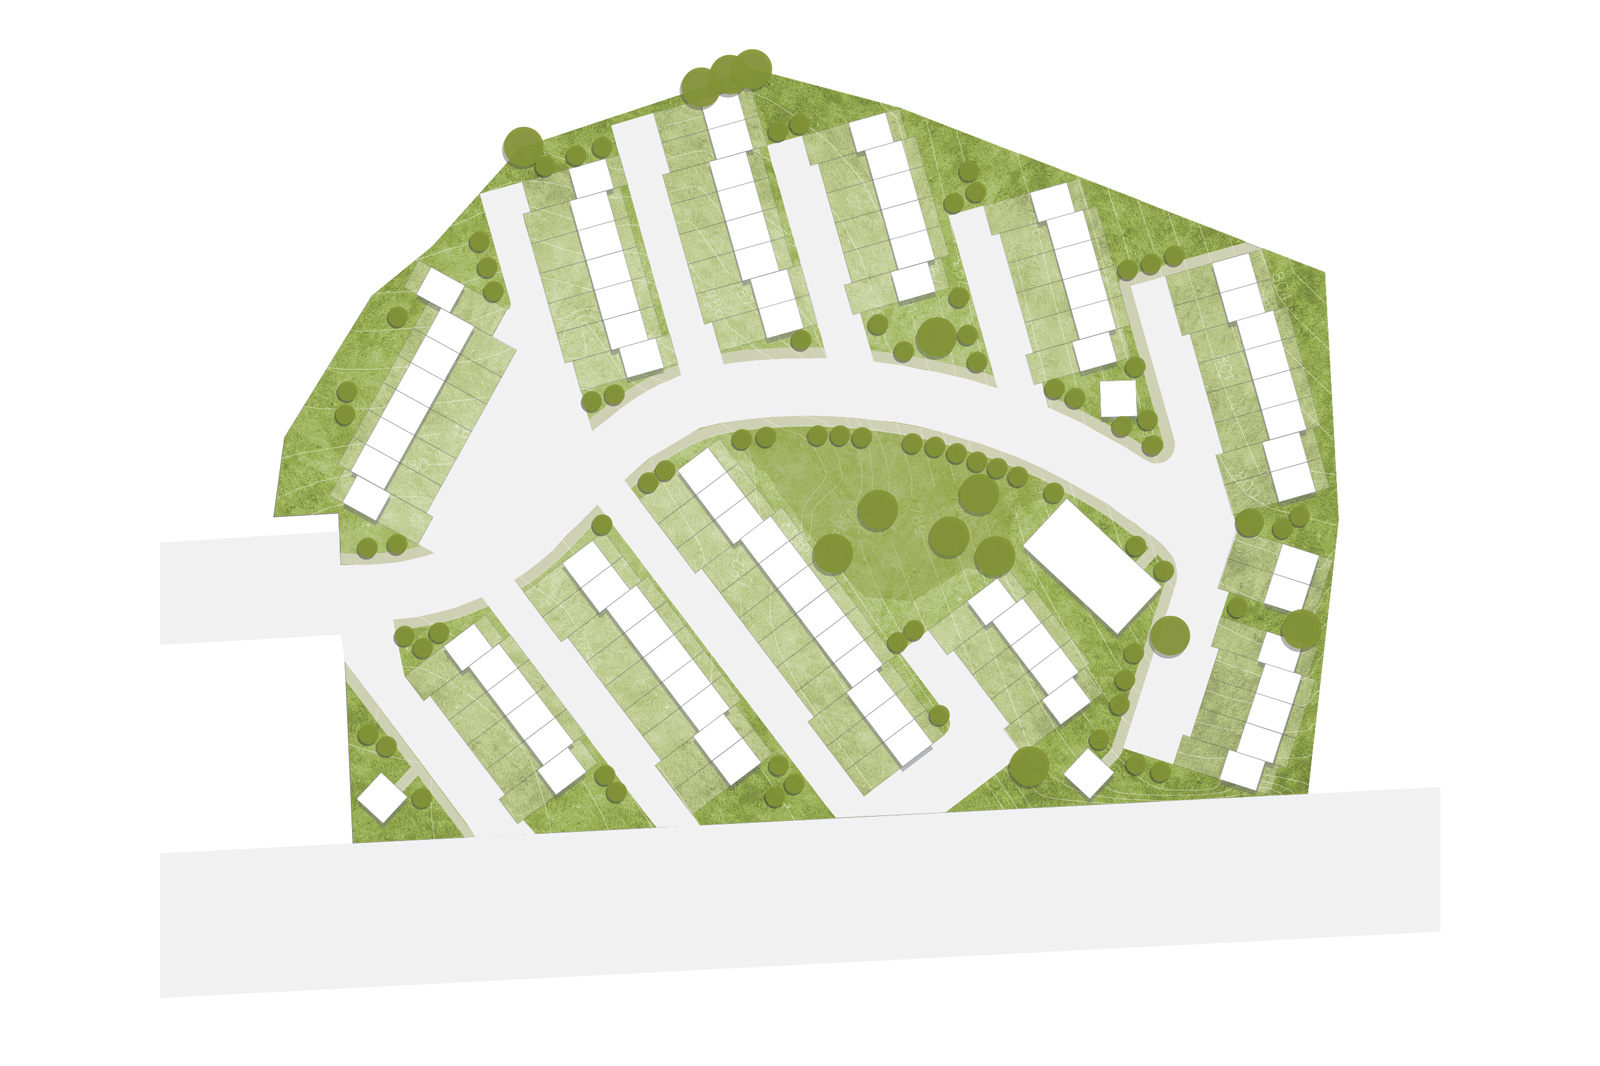 Schematic of the allotment plan for relocation of families